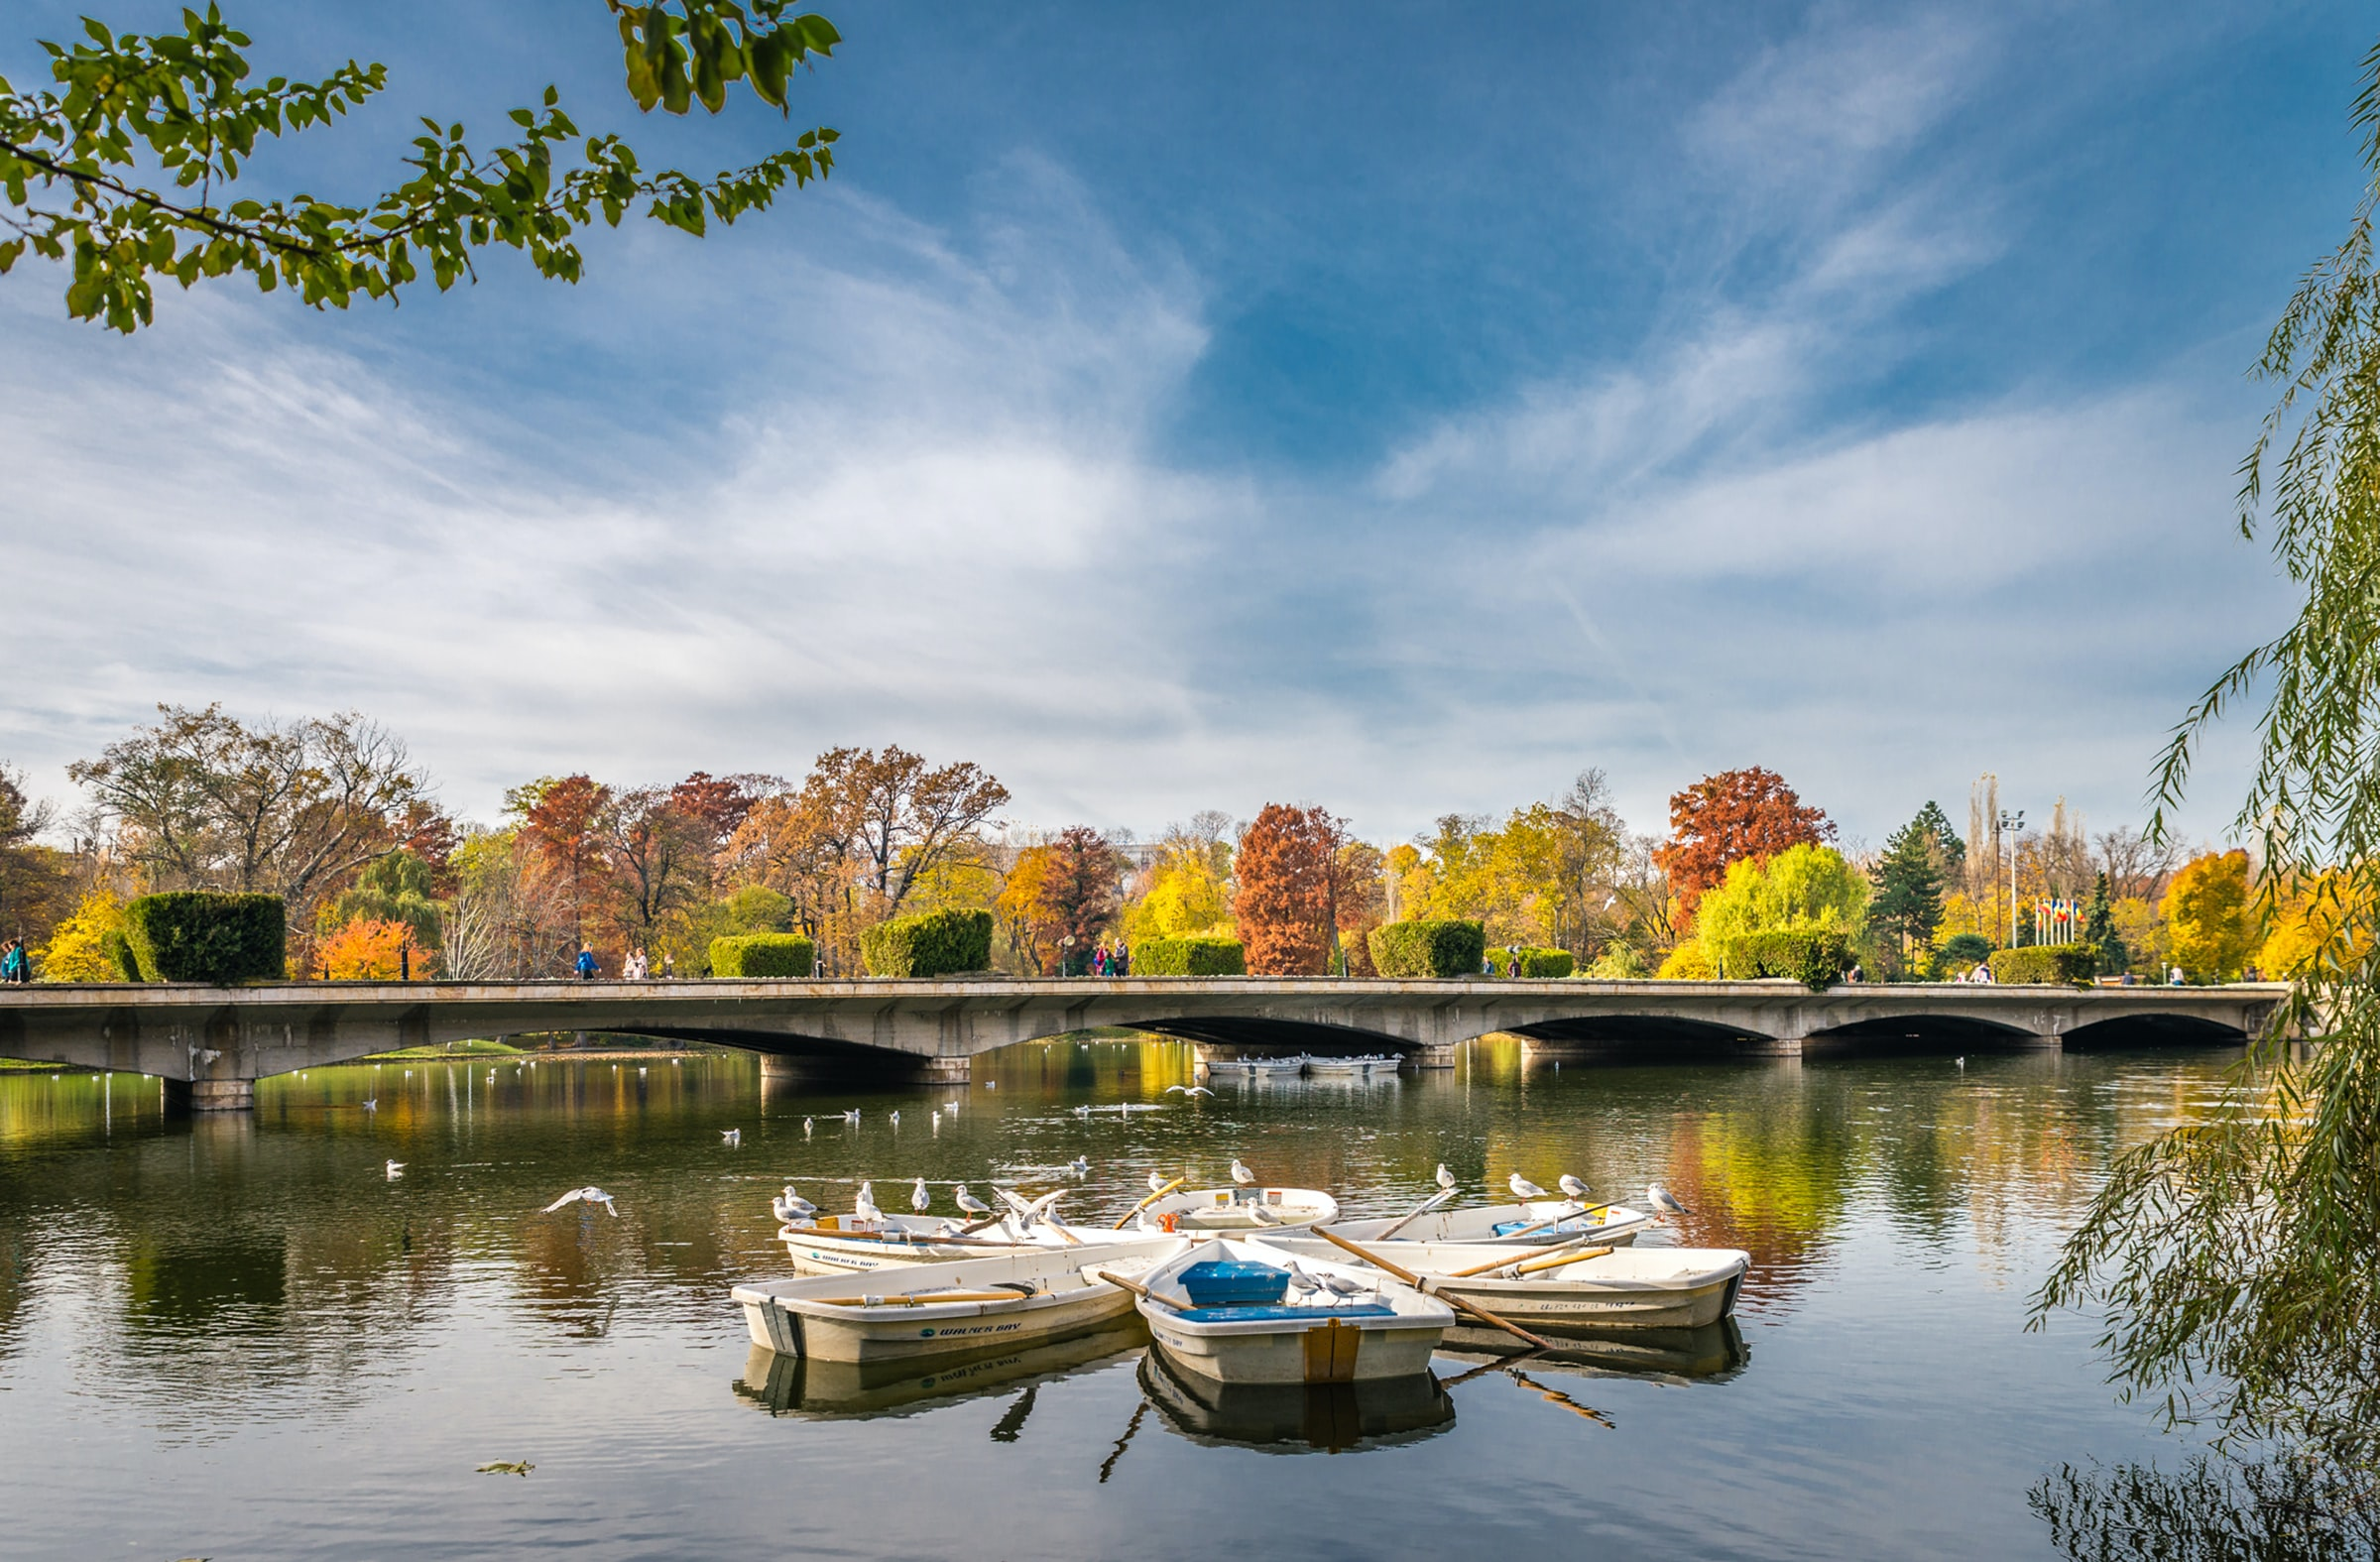 five rowboats on body of water in distant of concrete bridge and trees